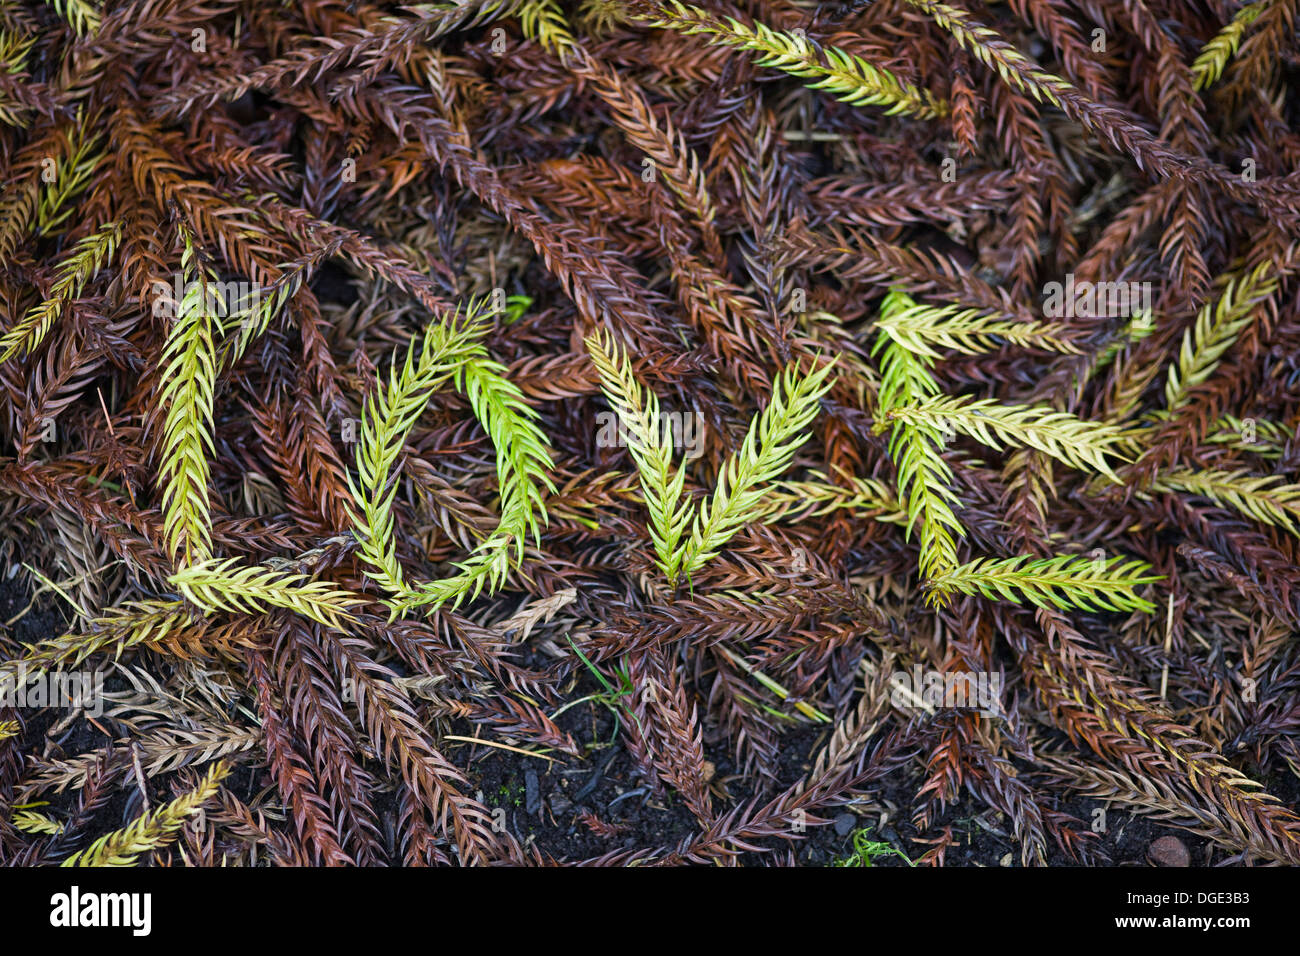 Taiwania cryptomerioides large coniferous tree Needles Spelling out the Word Love on the ground - Stock Image